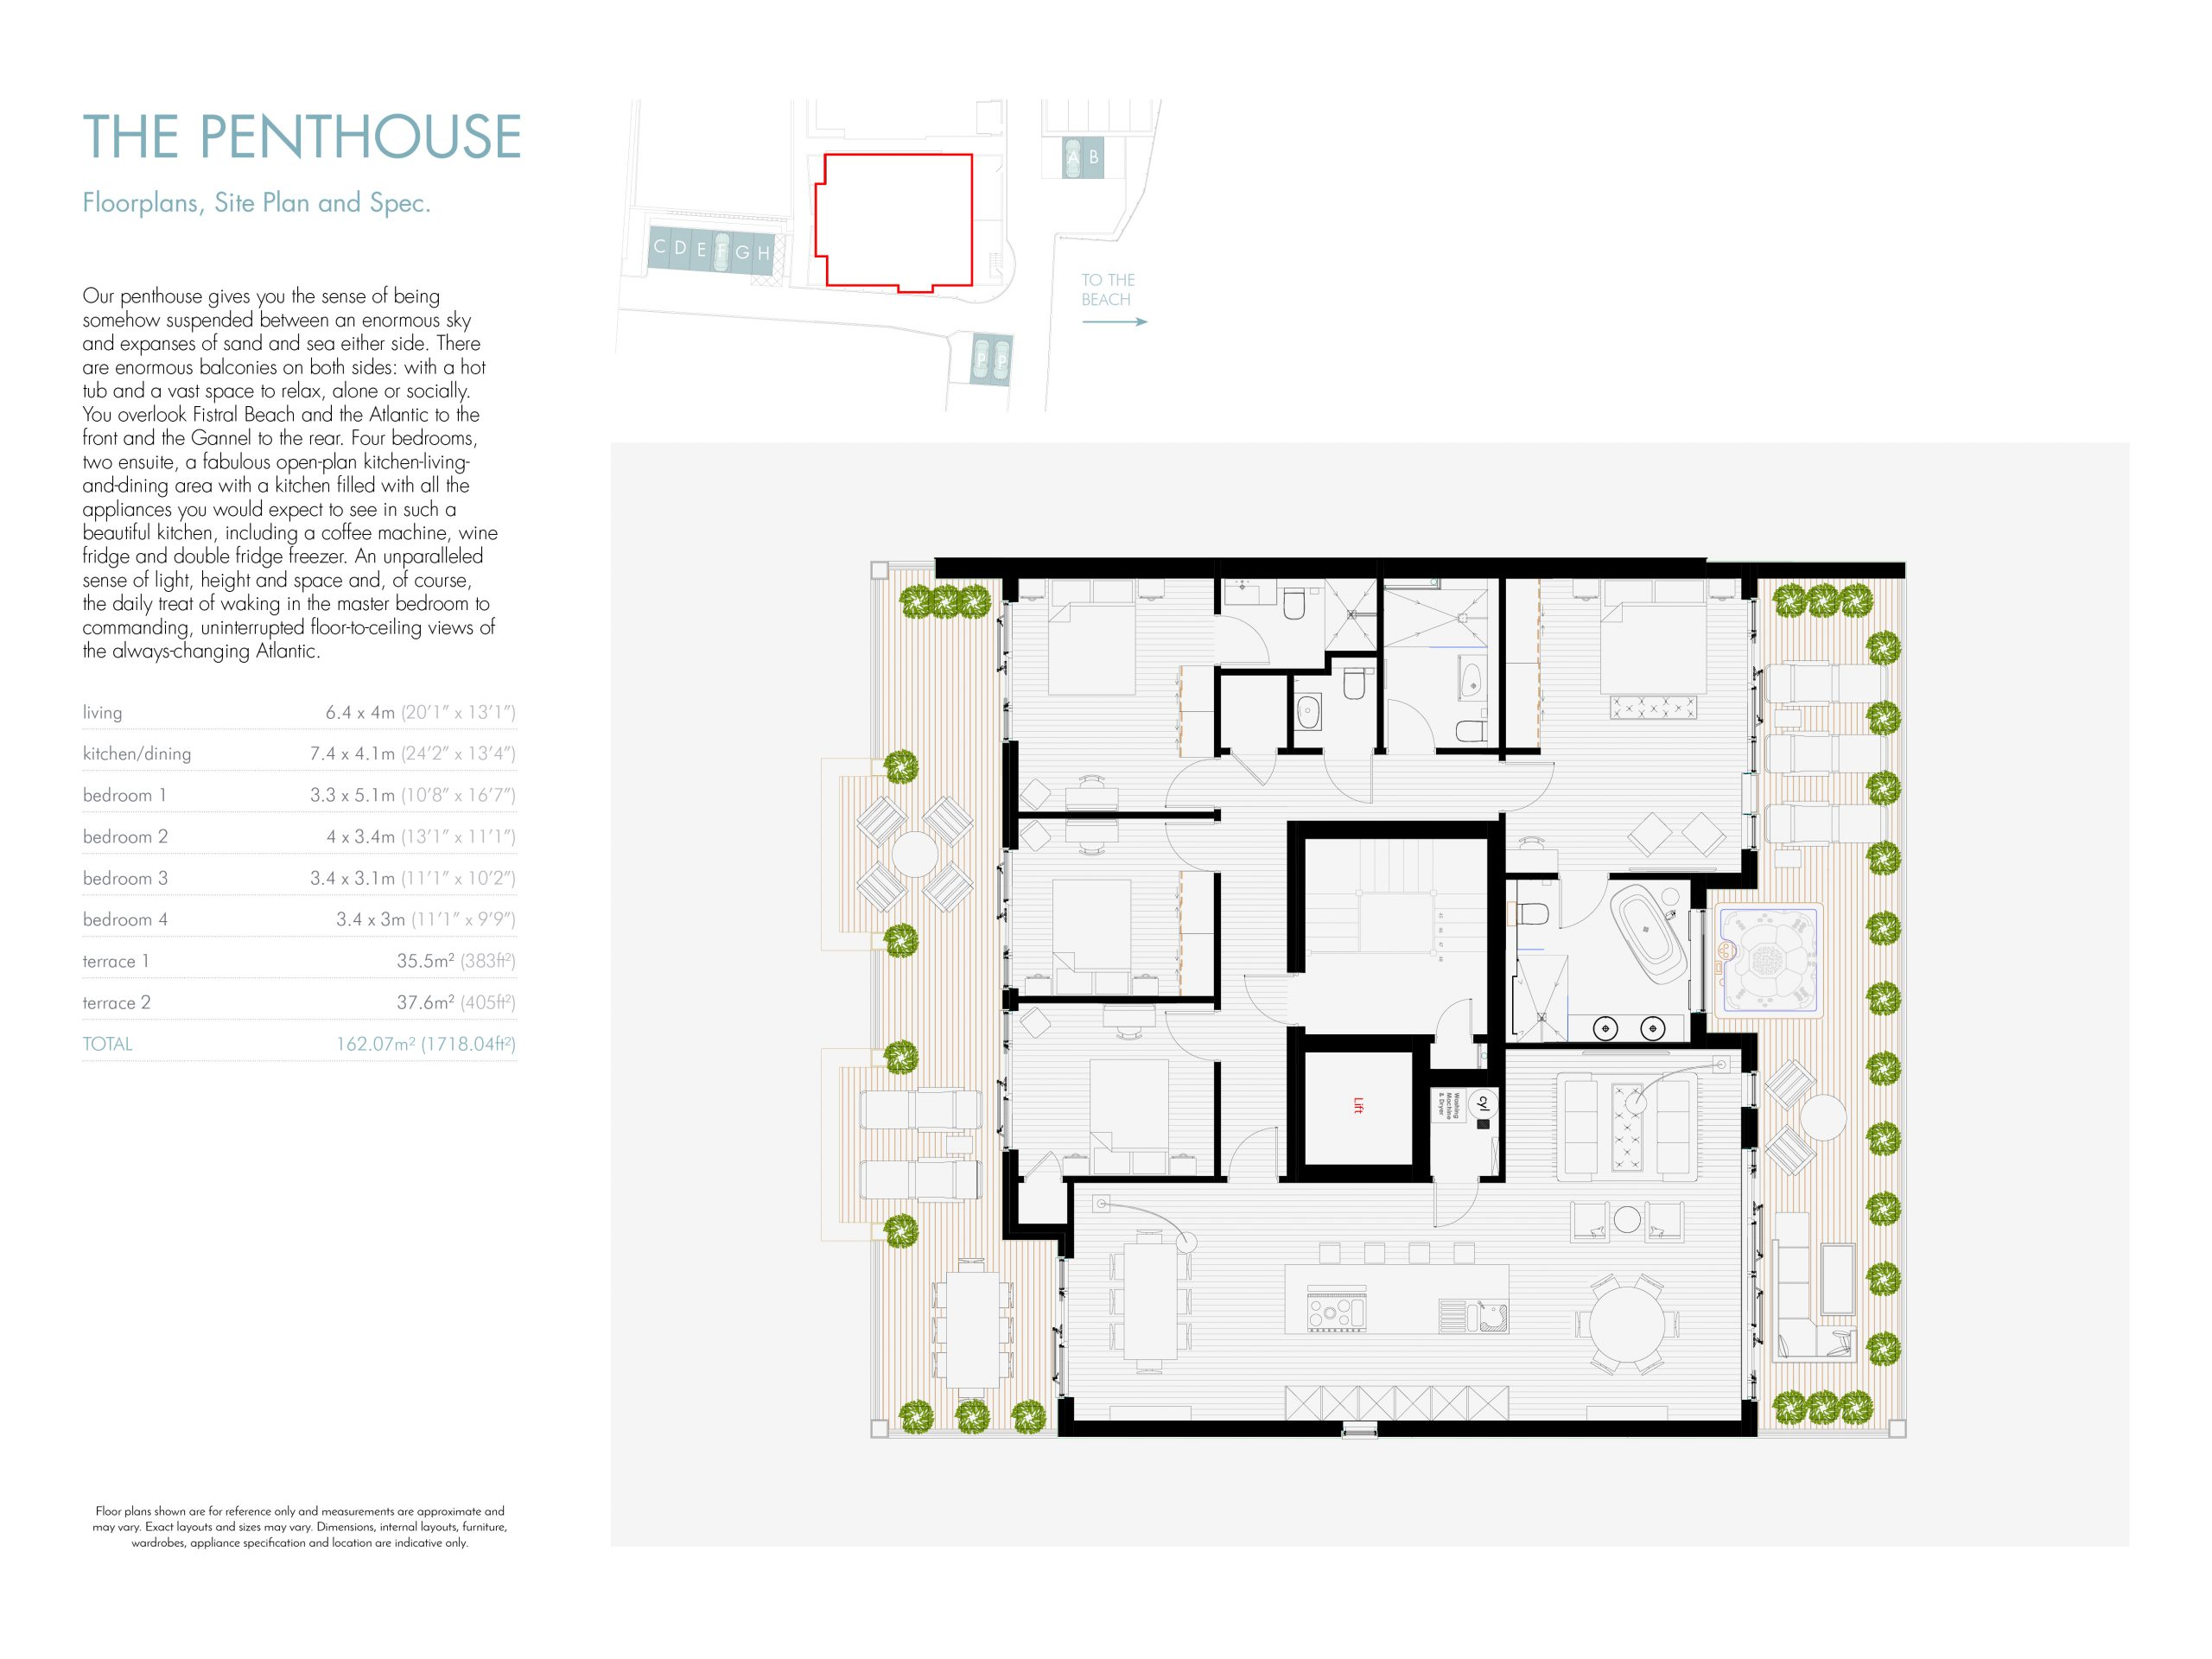 Stephens and stephens developers Saltwater pentire avenue newquay cornwall Floorplans 1200x900 Penthouse